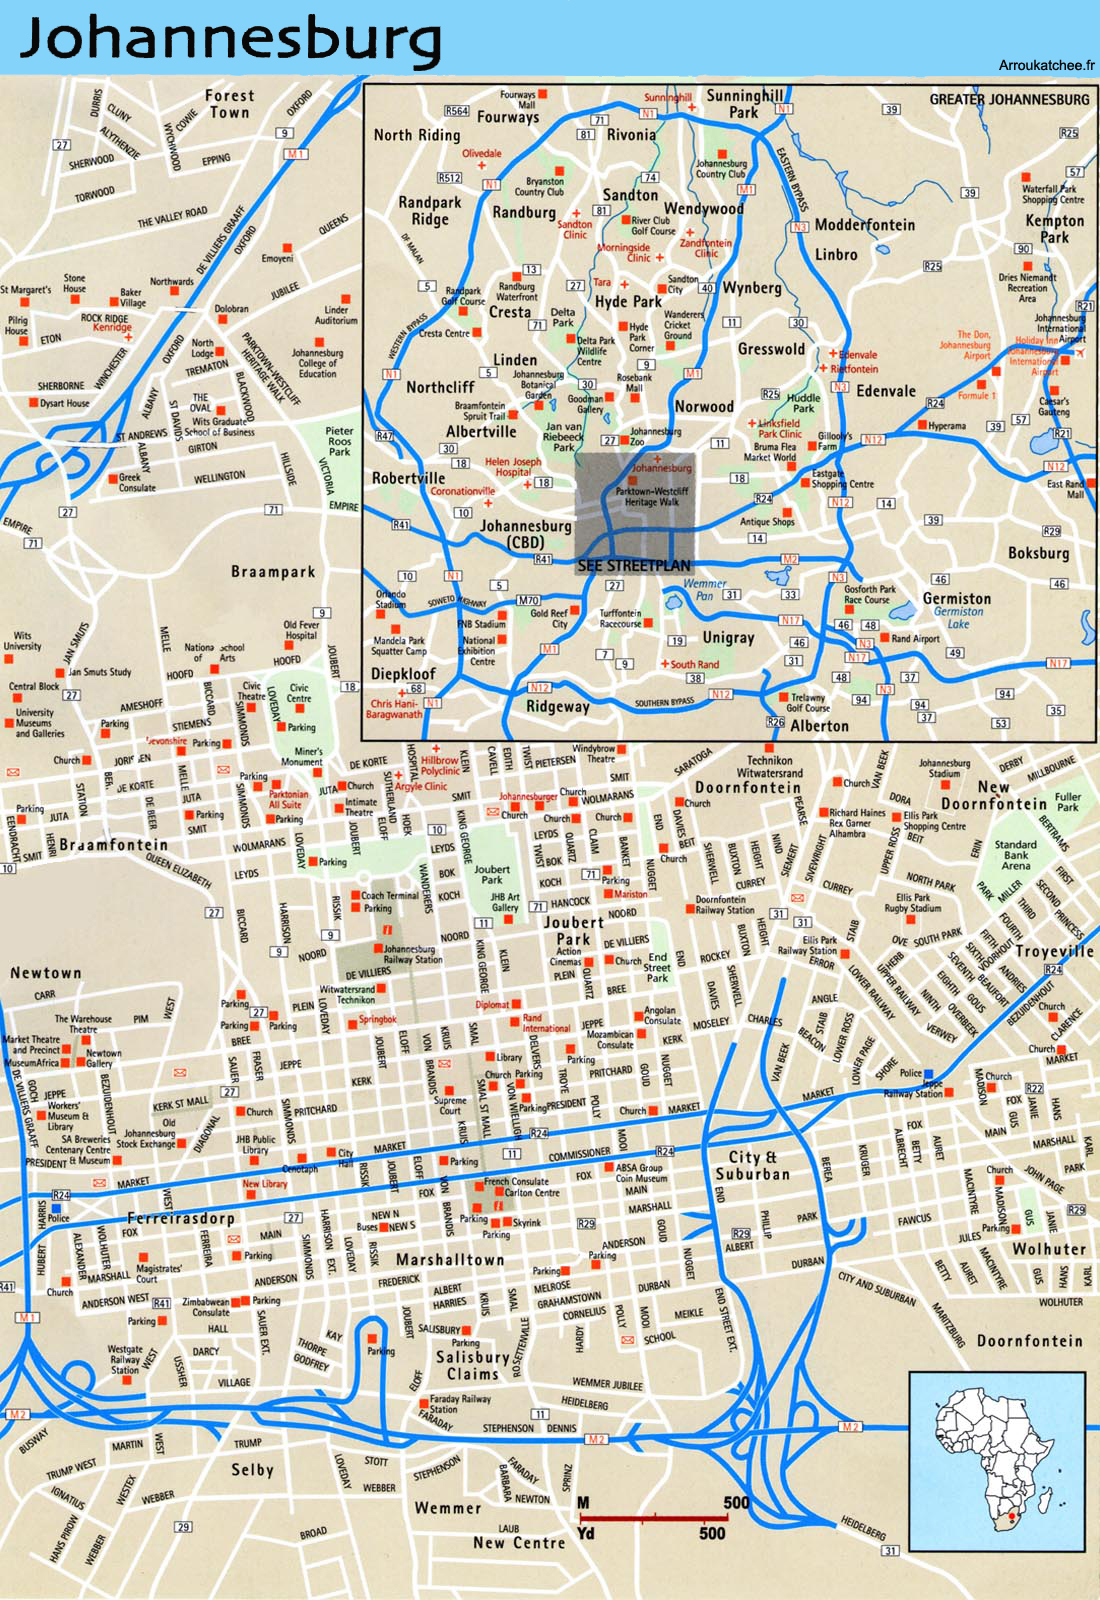 Map Of Johannesburg Large Johannesburg Maps for Free Download and Print | High